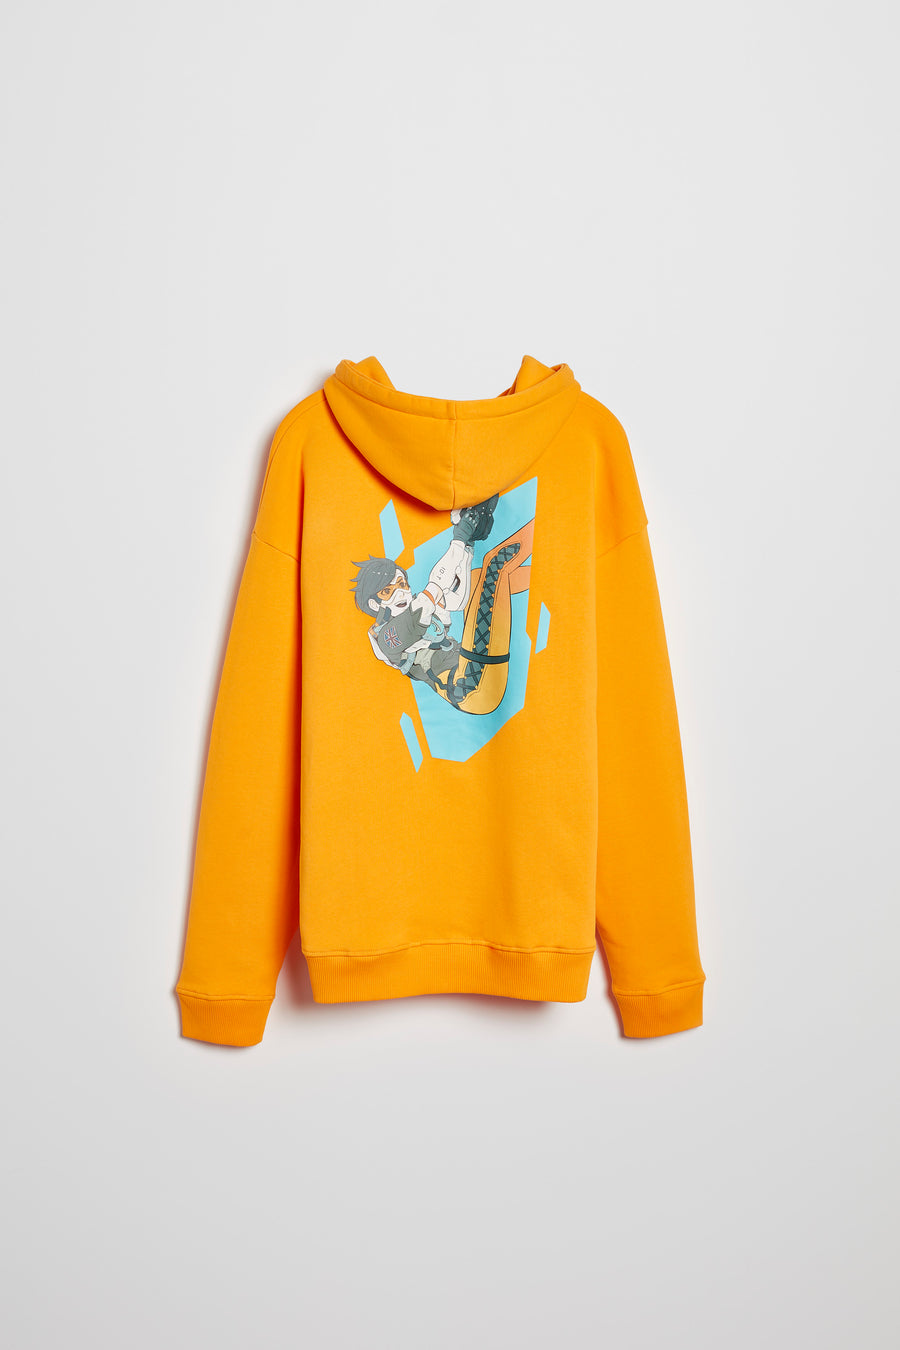 Overwatch Anime Tracer Oversize Pullover Hoodie